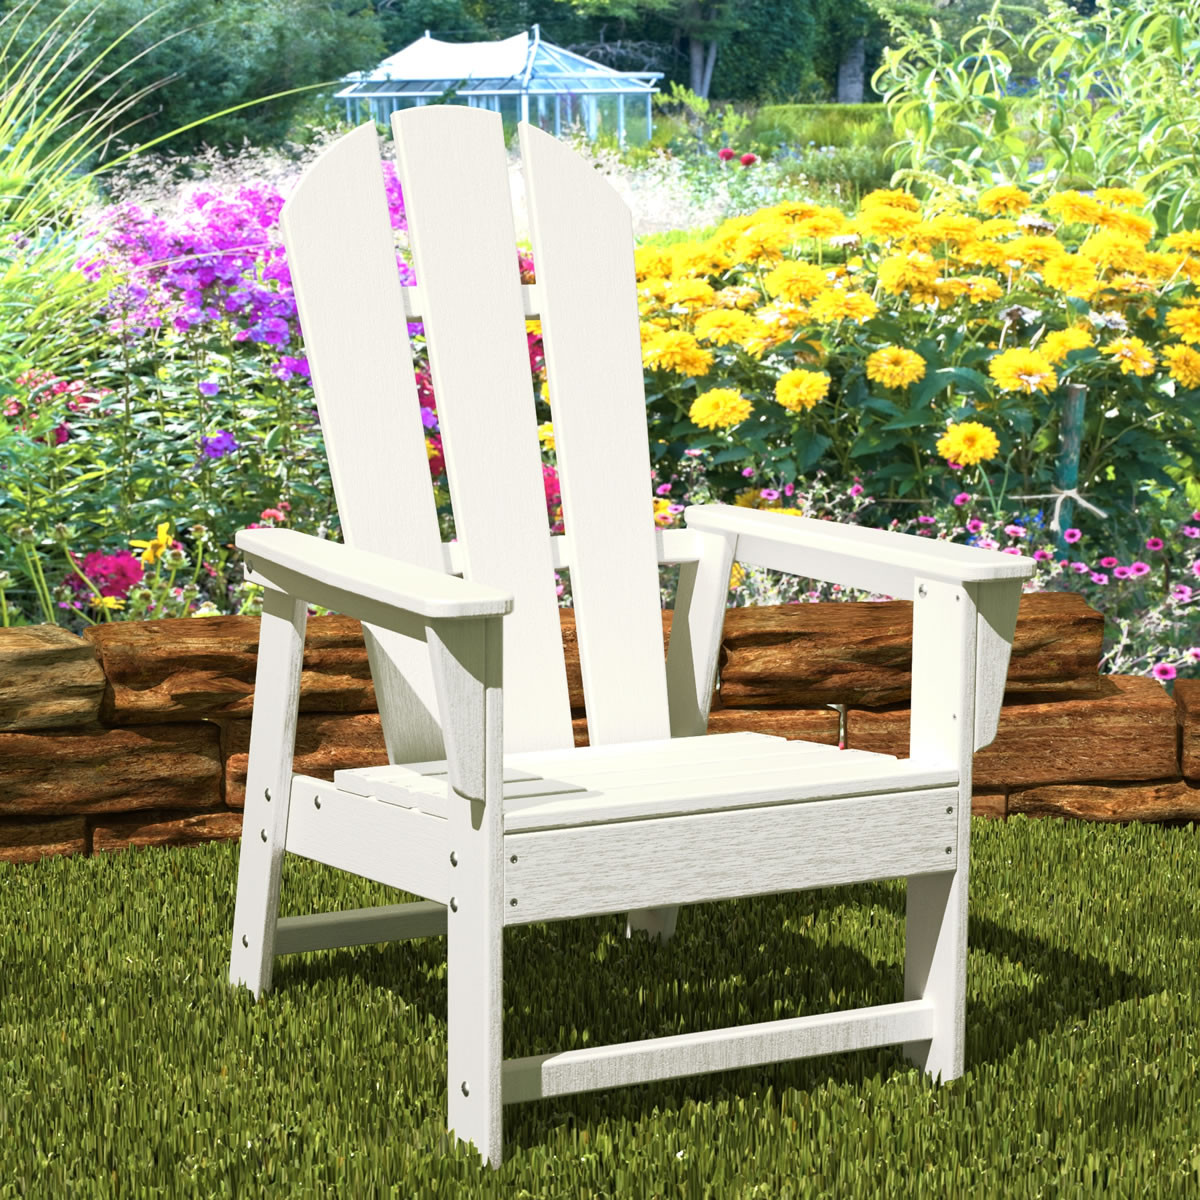 polywood adirondack chairs stand up wheelchair original chair as seen on qvc